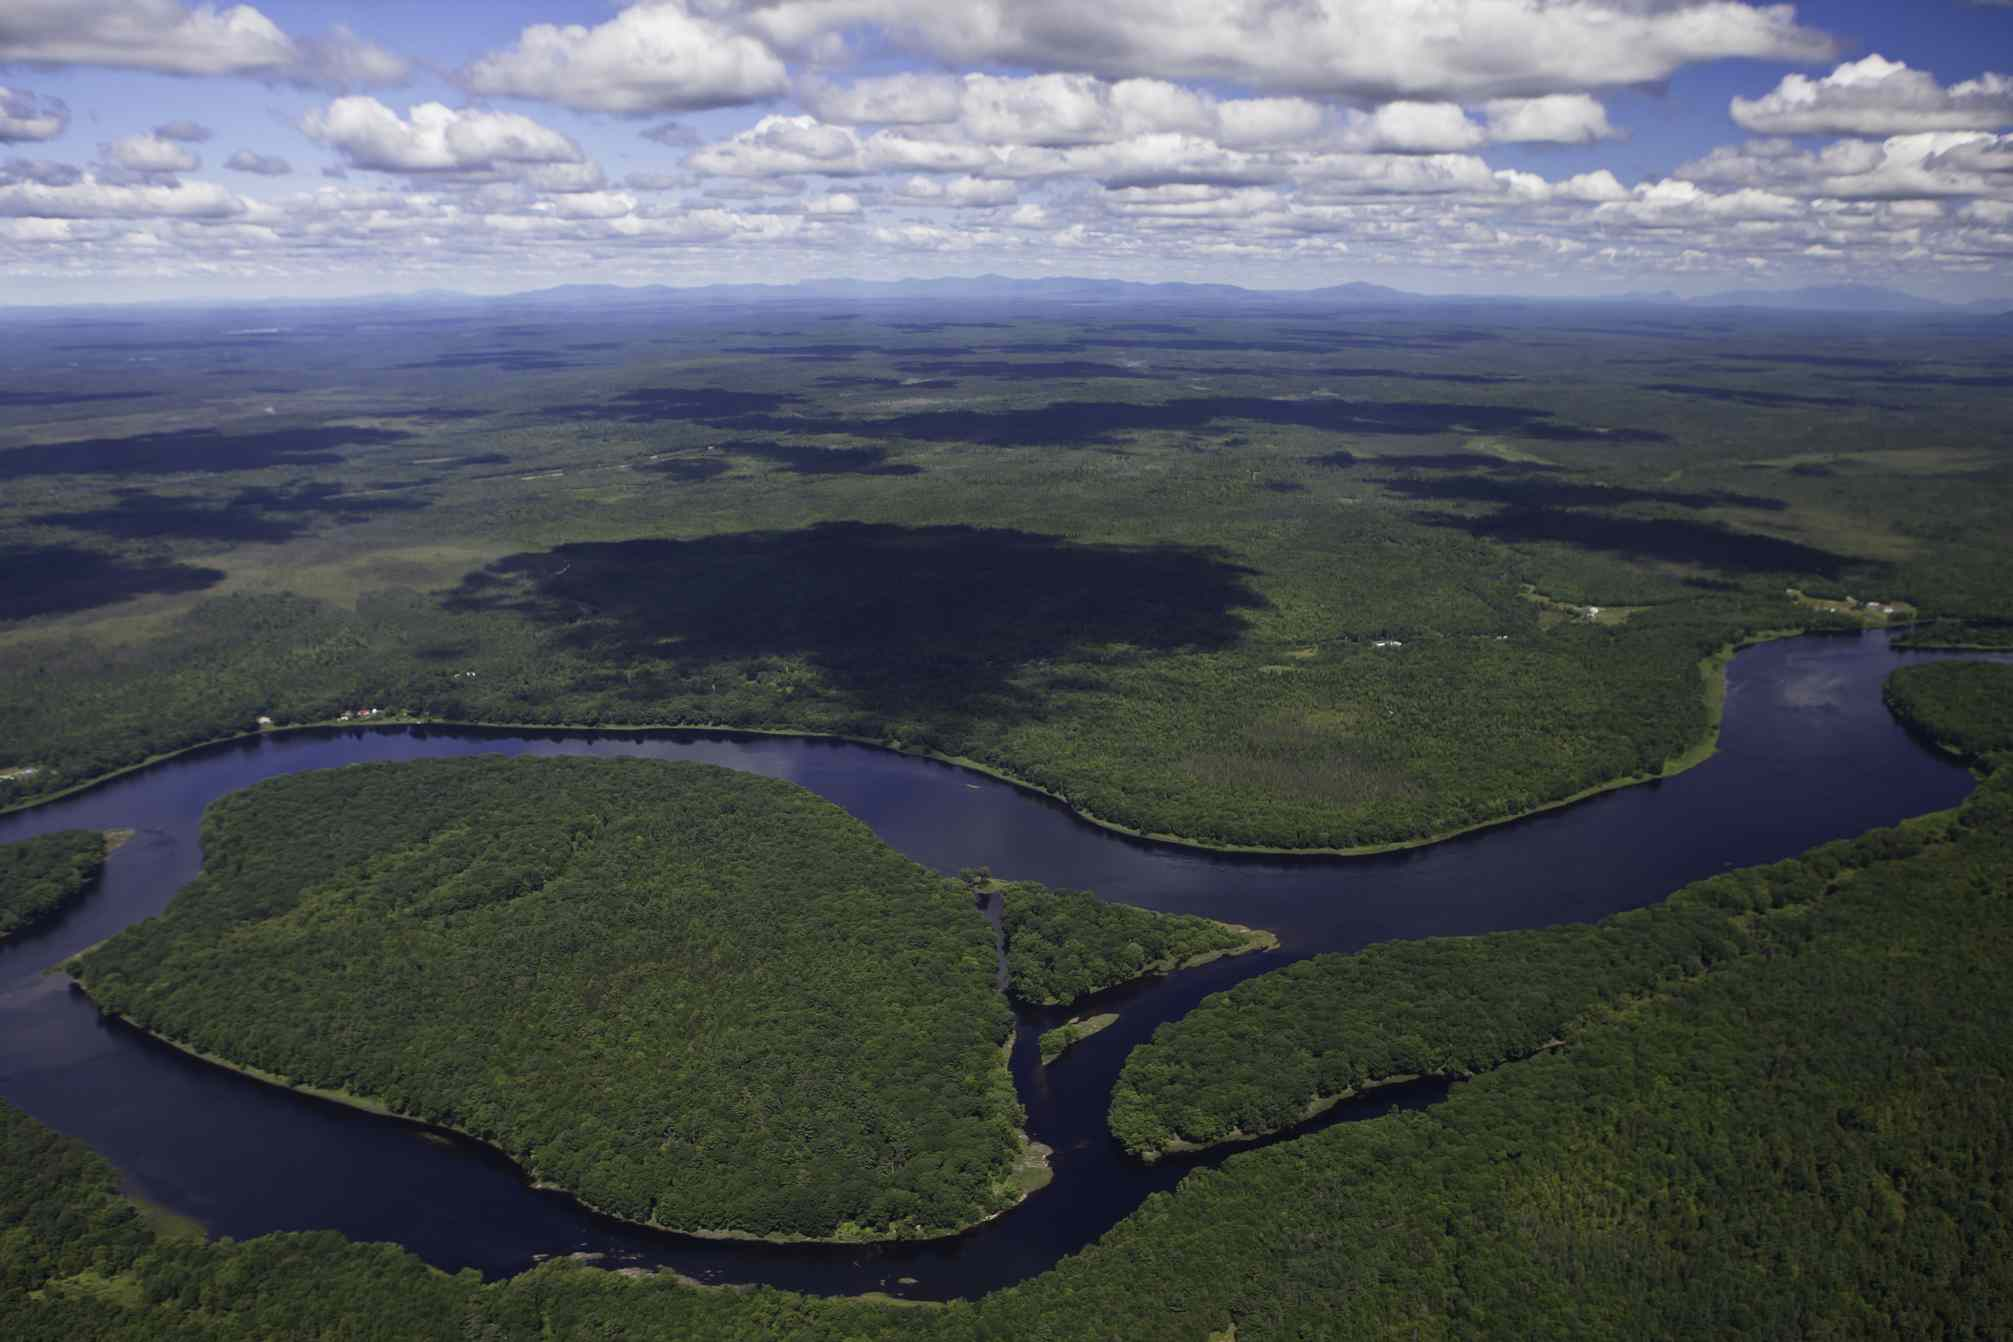 Aerial view of Penobscot River winding through forest